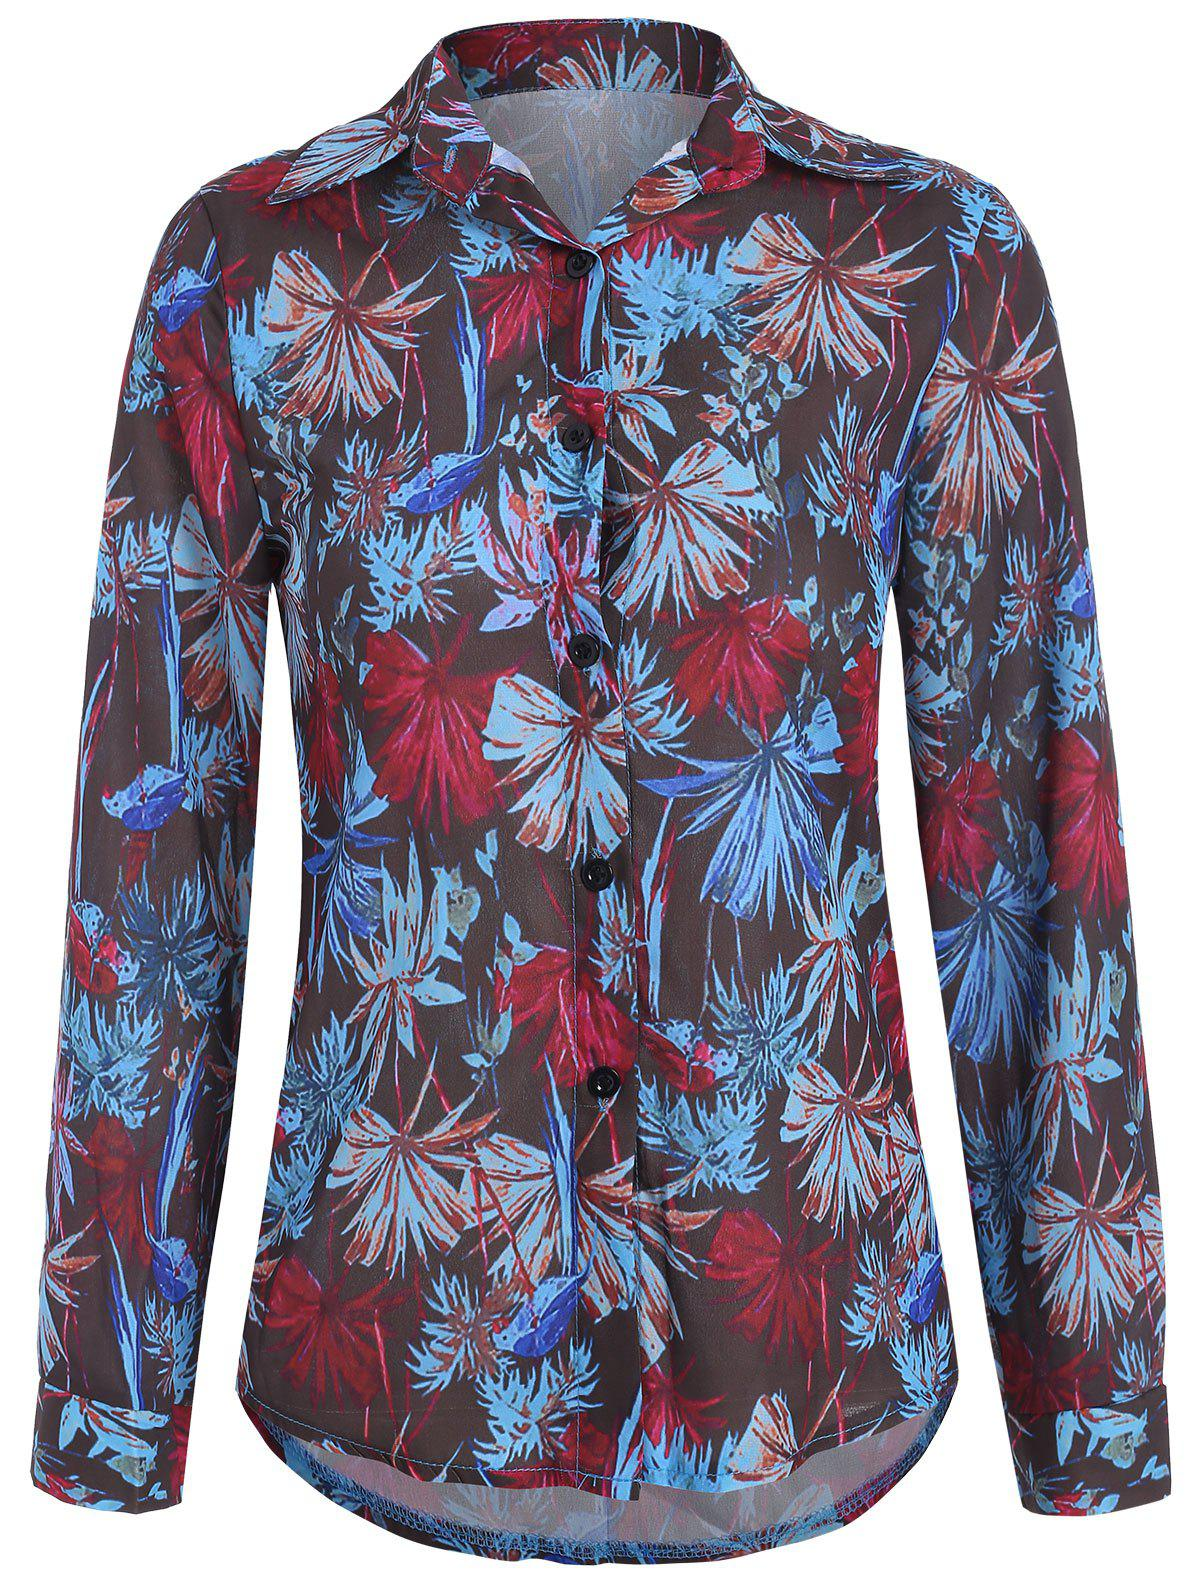 Affordable Casual Floral Printed Shirt